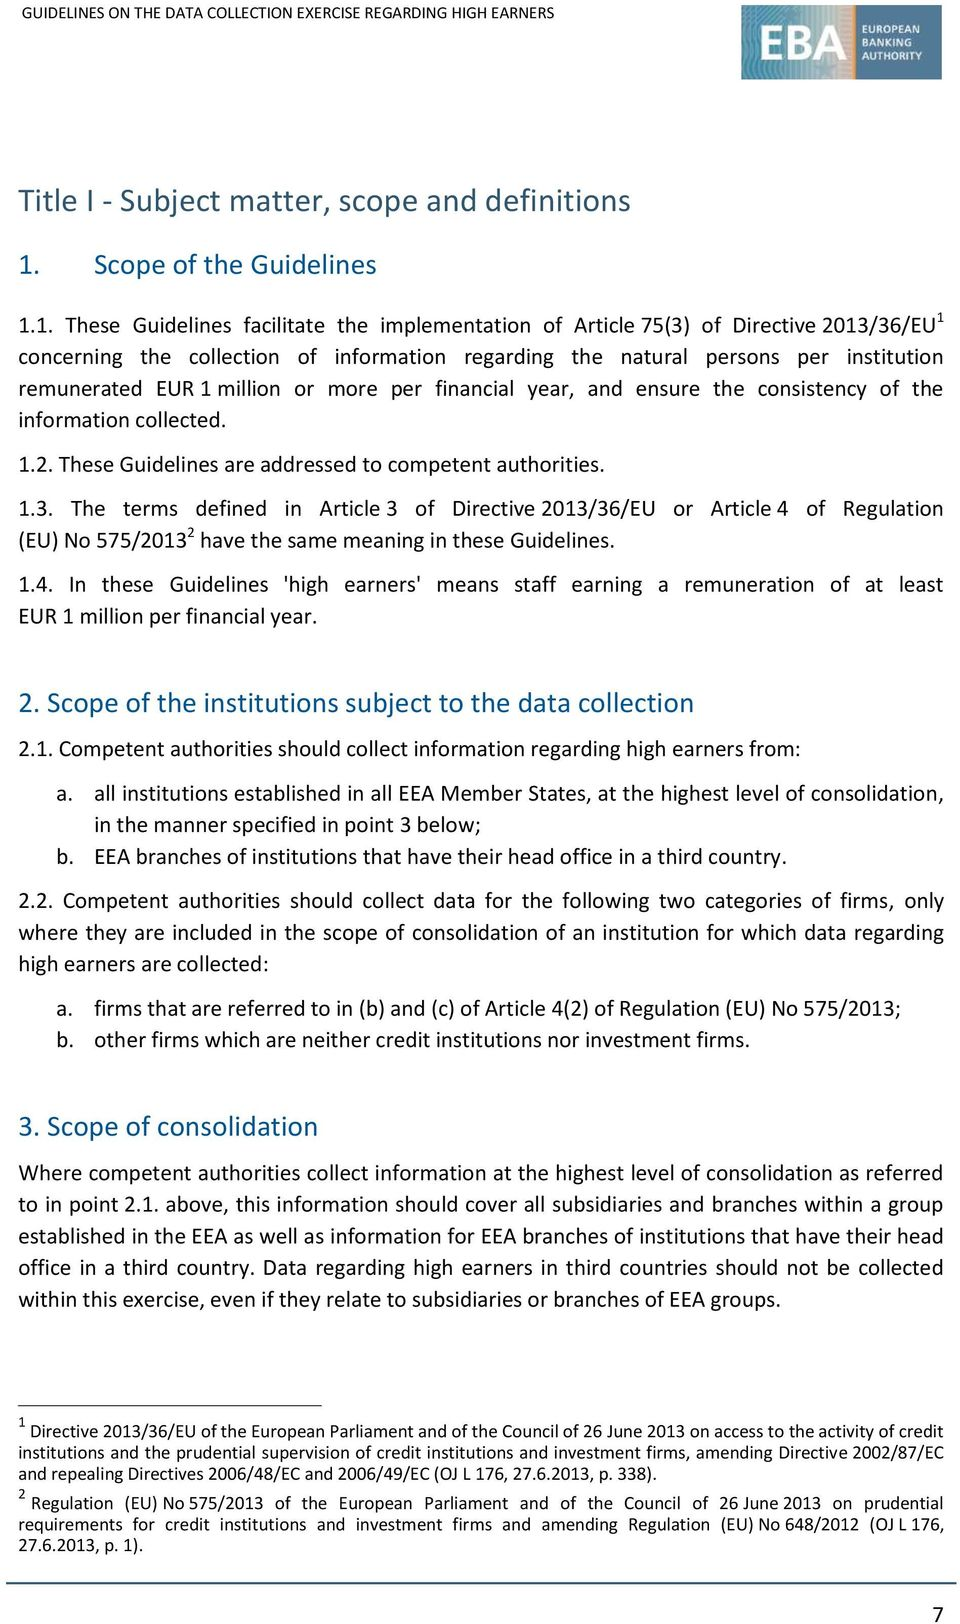 1. These Guidelines facilitate the implementation of Article 75(3) of Directive 2013/36/EU 1 concerning the collection of information regarding the natural persons per institution remunerated EUR 1